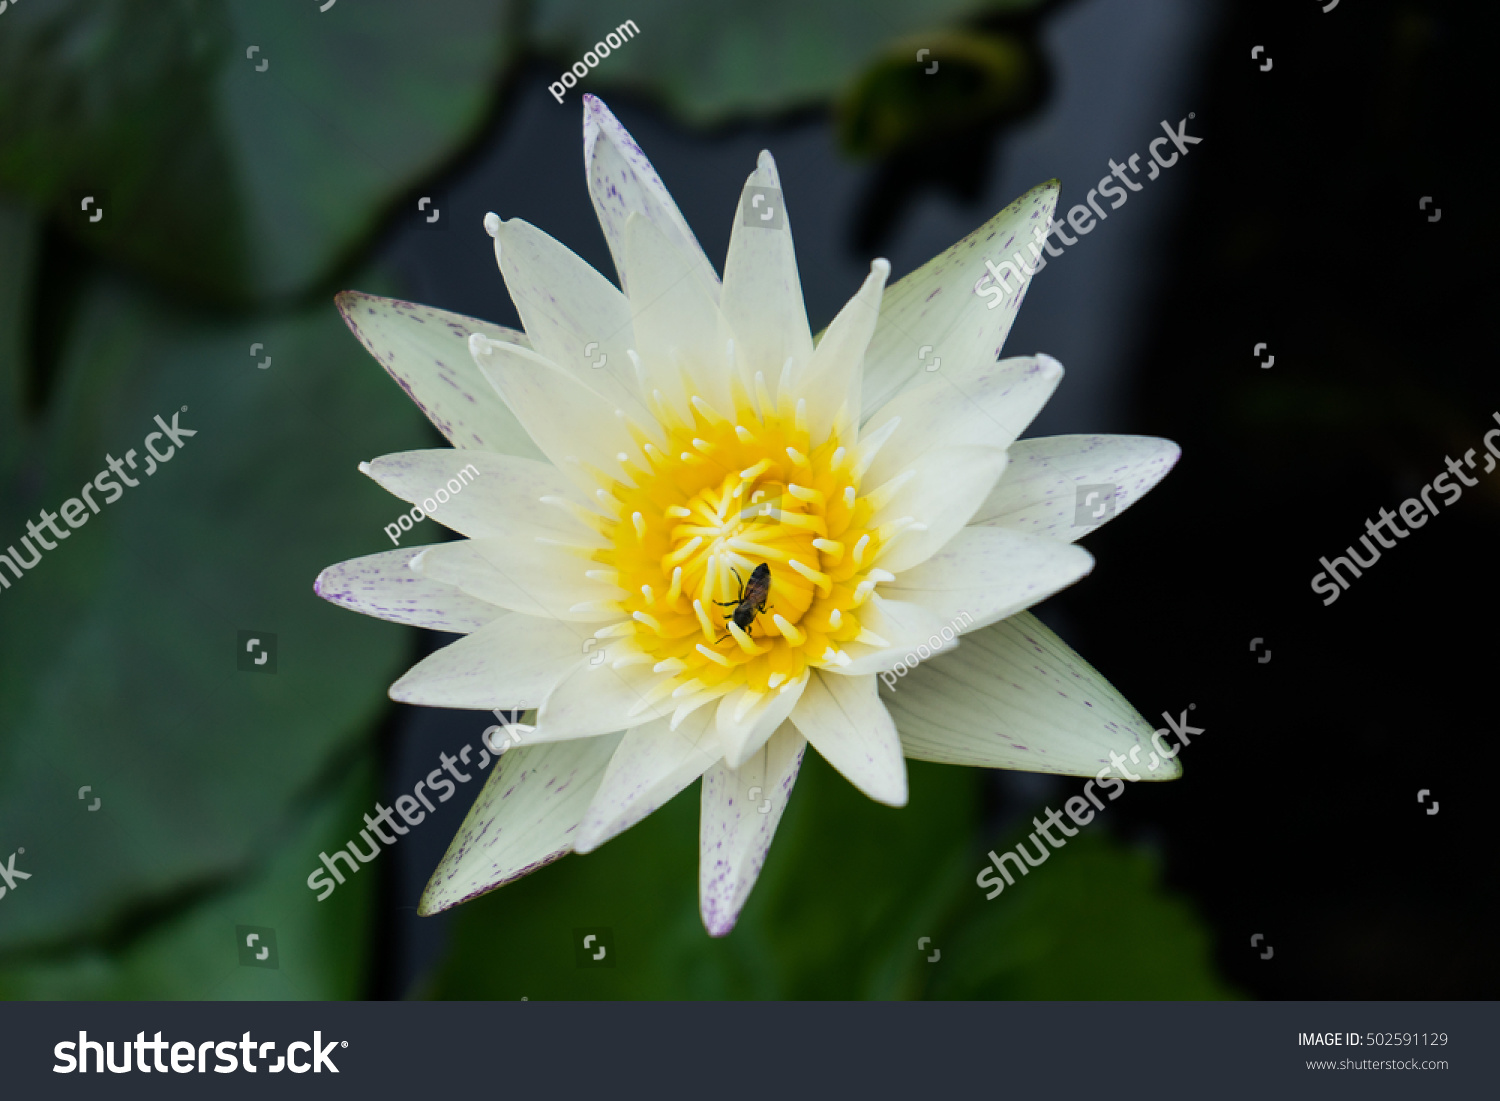 White Lotus Flower With Yellow Pollen White Lotus Flowers With Bee